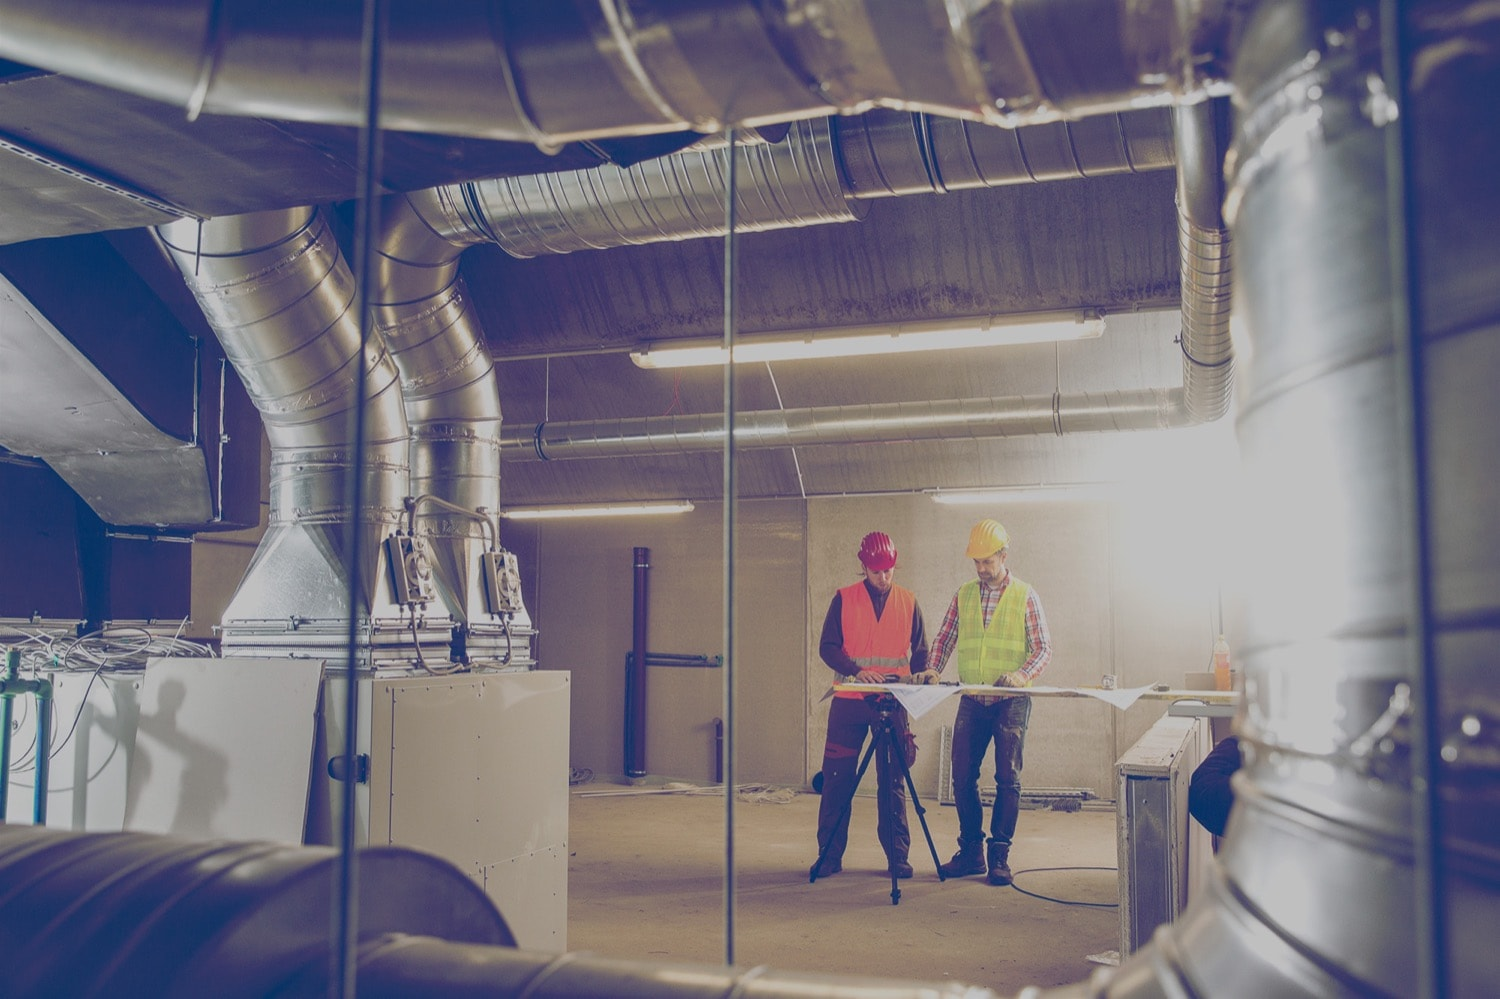 Workers looking at blueprints in an industrial propane furnace room.